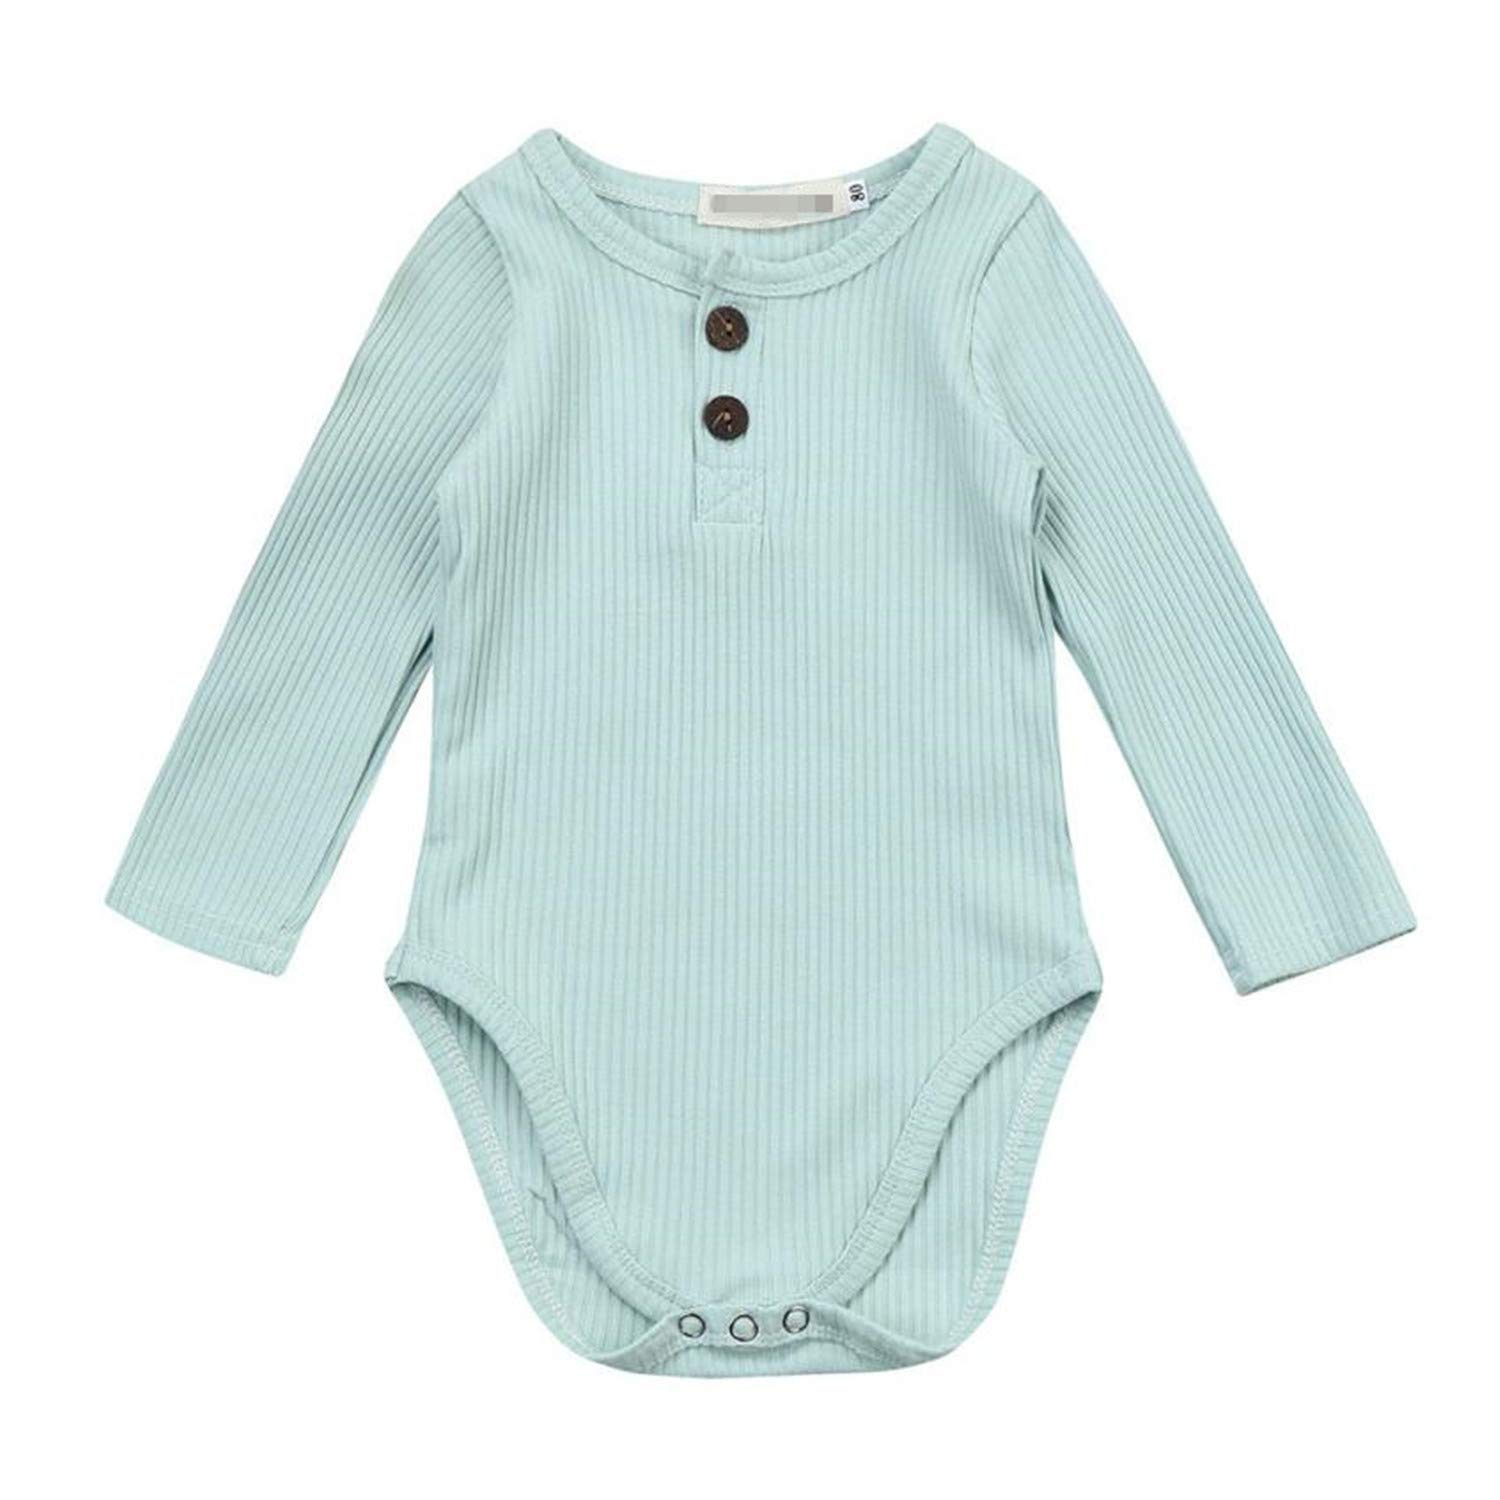 Giles Abbot Spring Cotton Baby Girl Stripe Knit Jumpsuit Romper Baby Long Sleeve Outfit